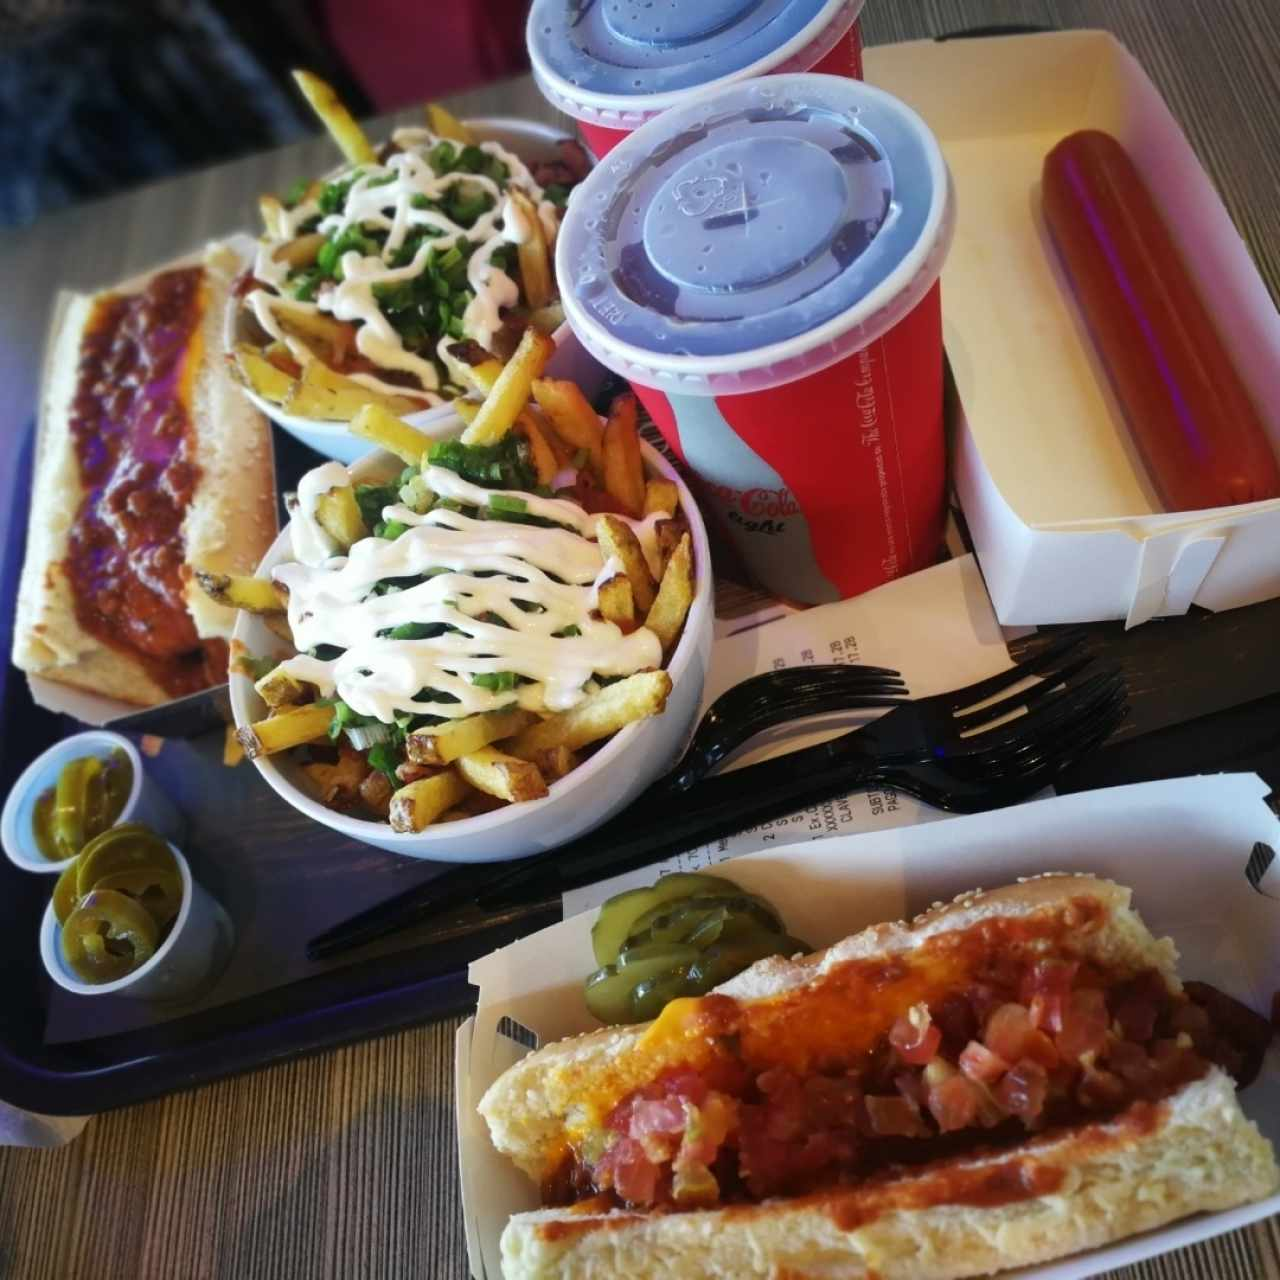 wok fries, chilli dog, sausage in the side and coke